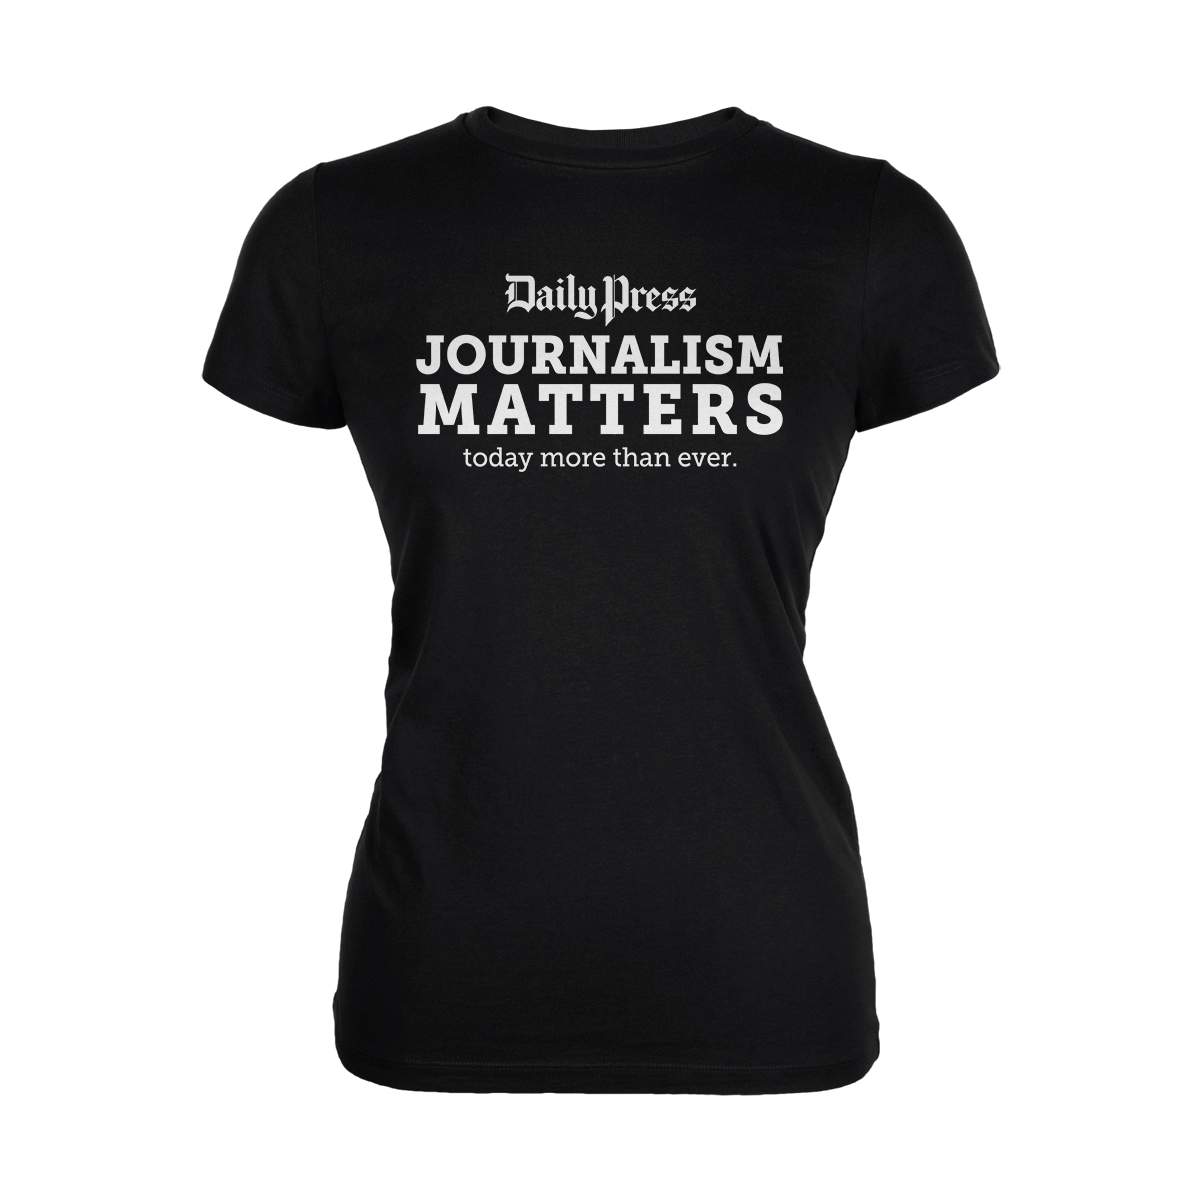 Daily Press Journalism Matters Women's T-Shirt